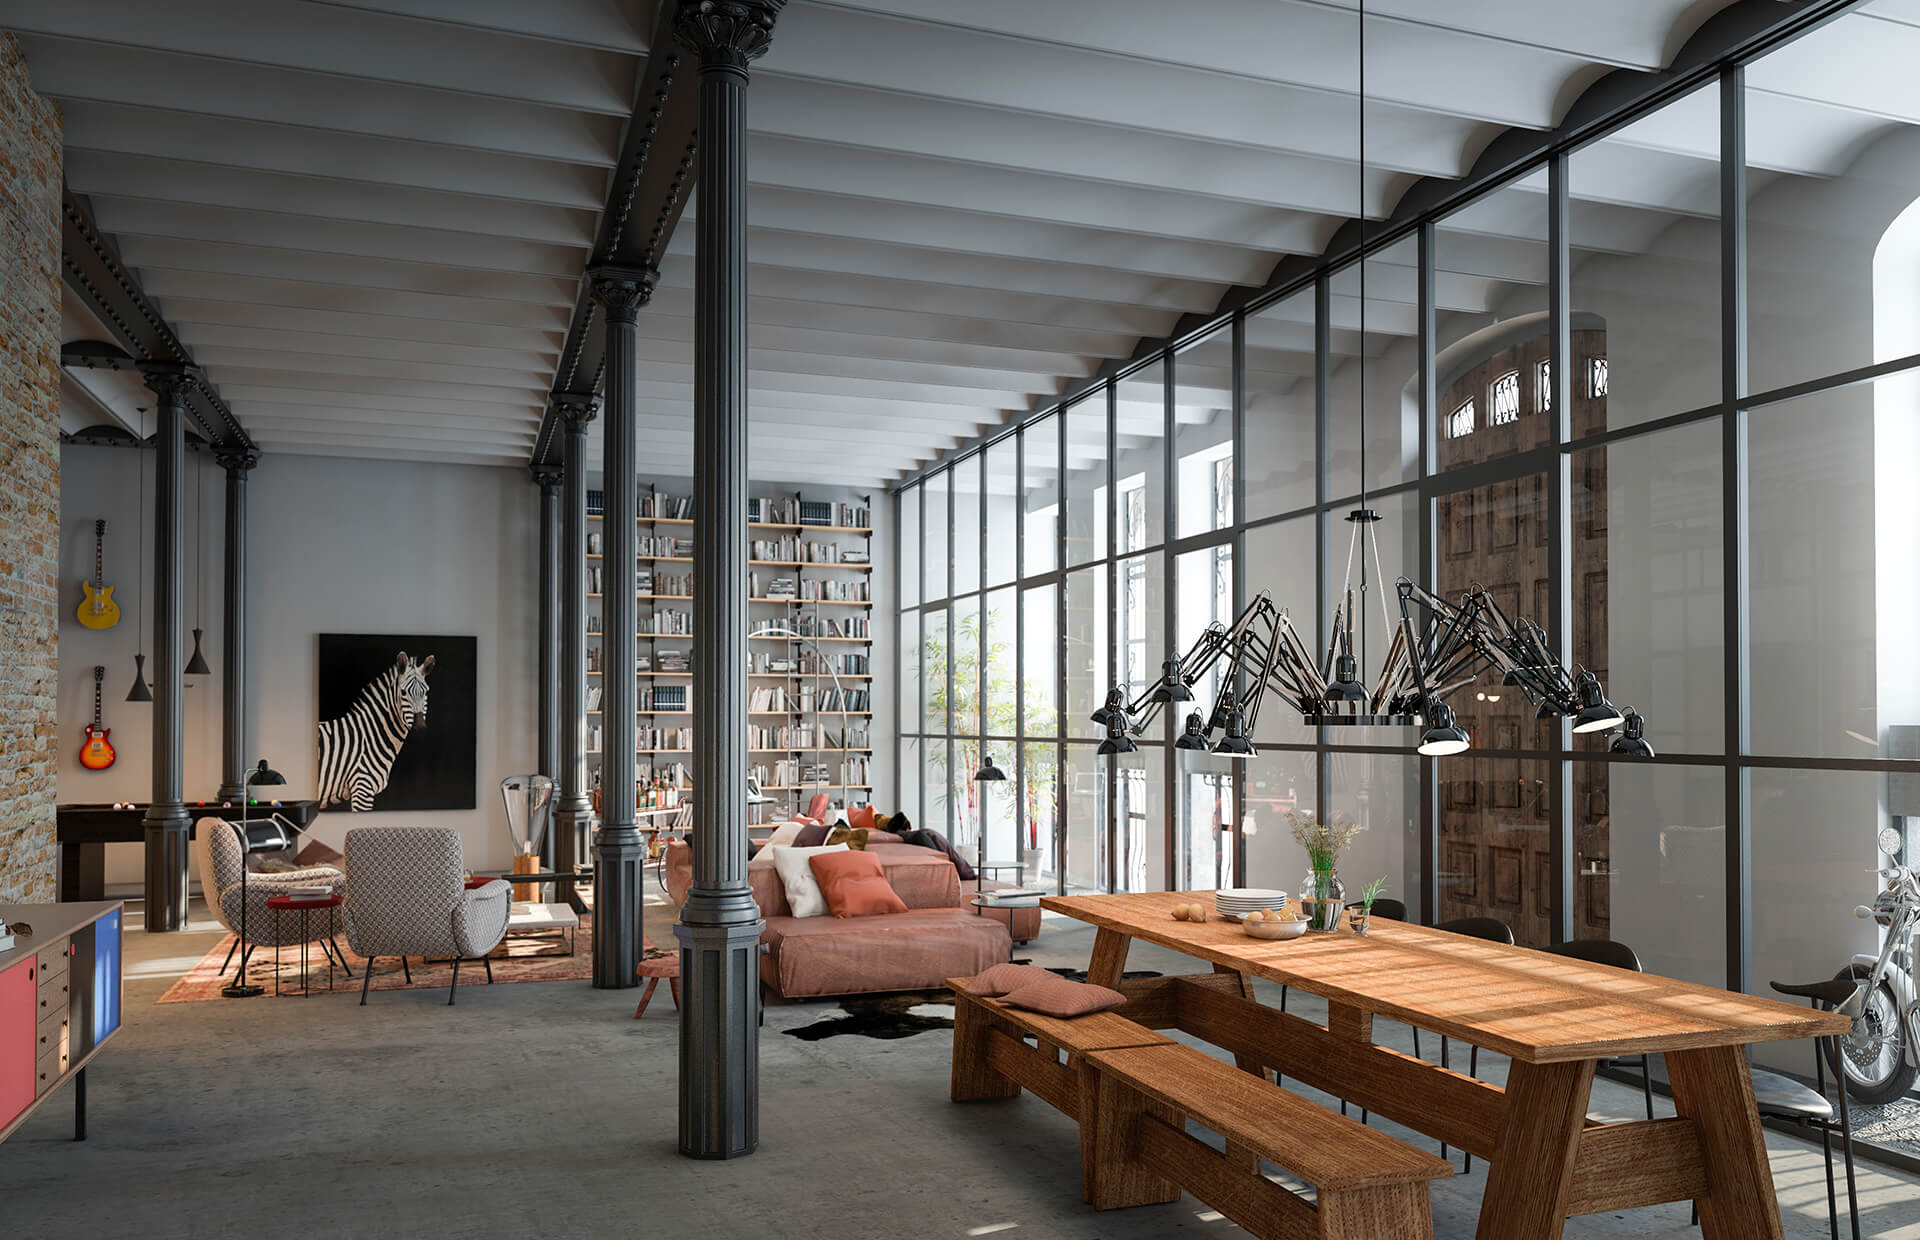 Co-Living With Luxury Barcelona Eclectic Trends.jpg